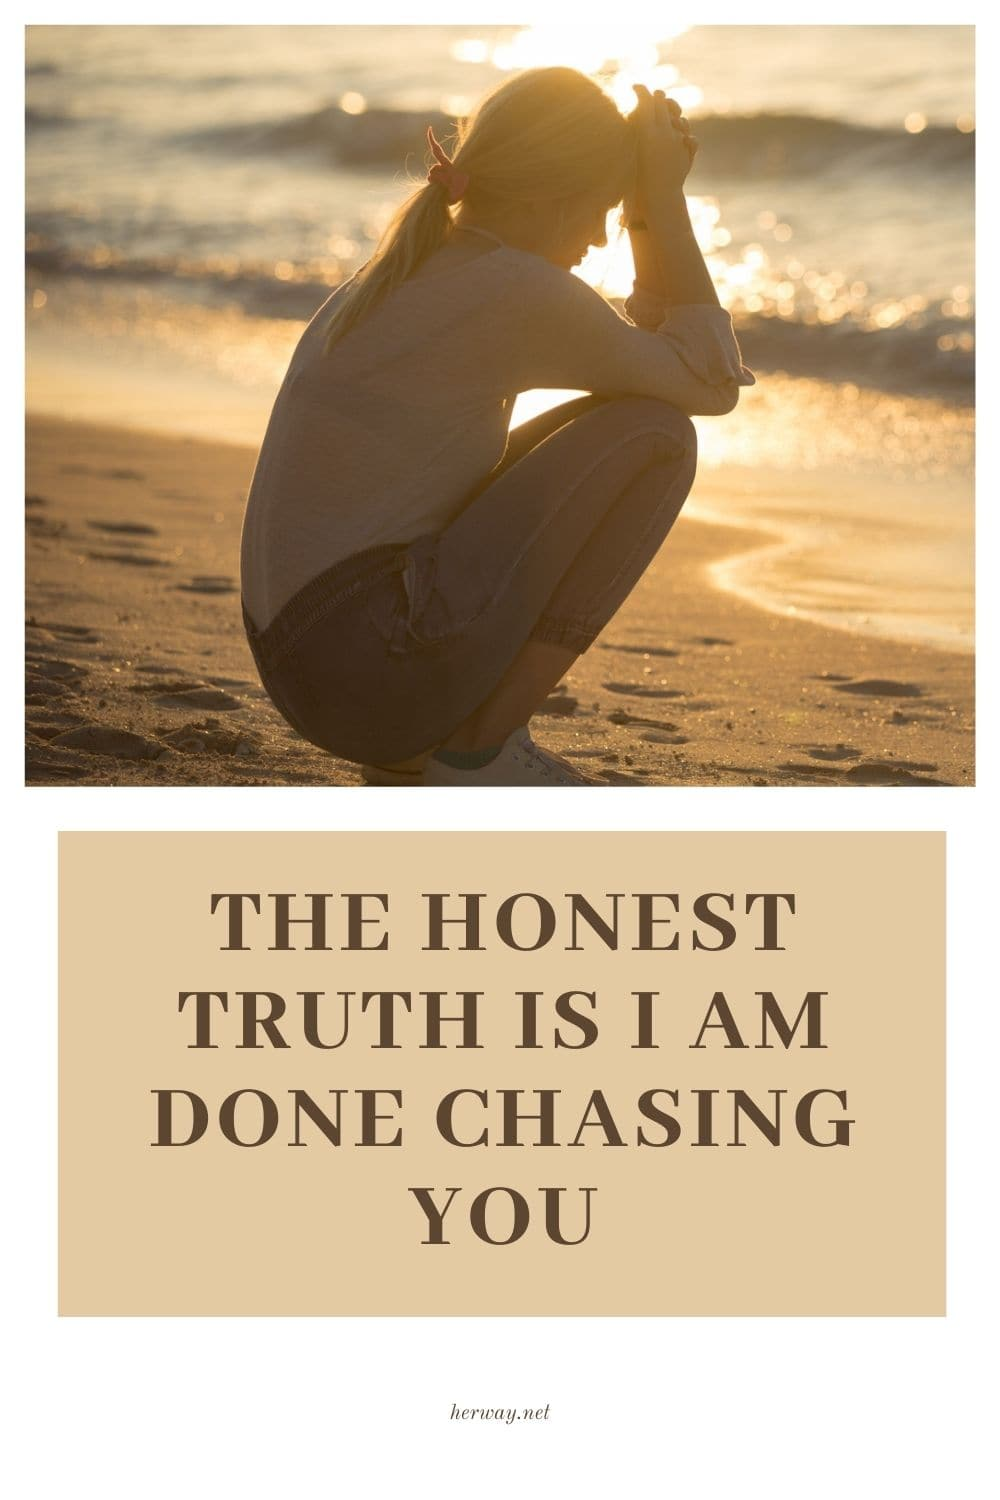 The Honest Truth Is I Am Done Chasing You